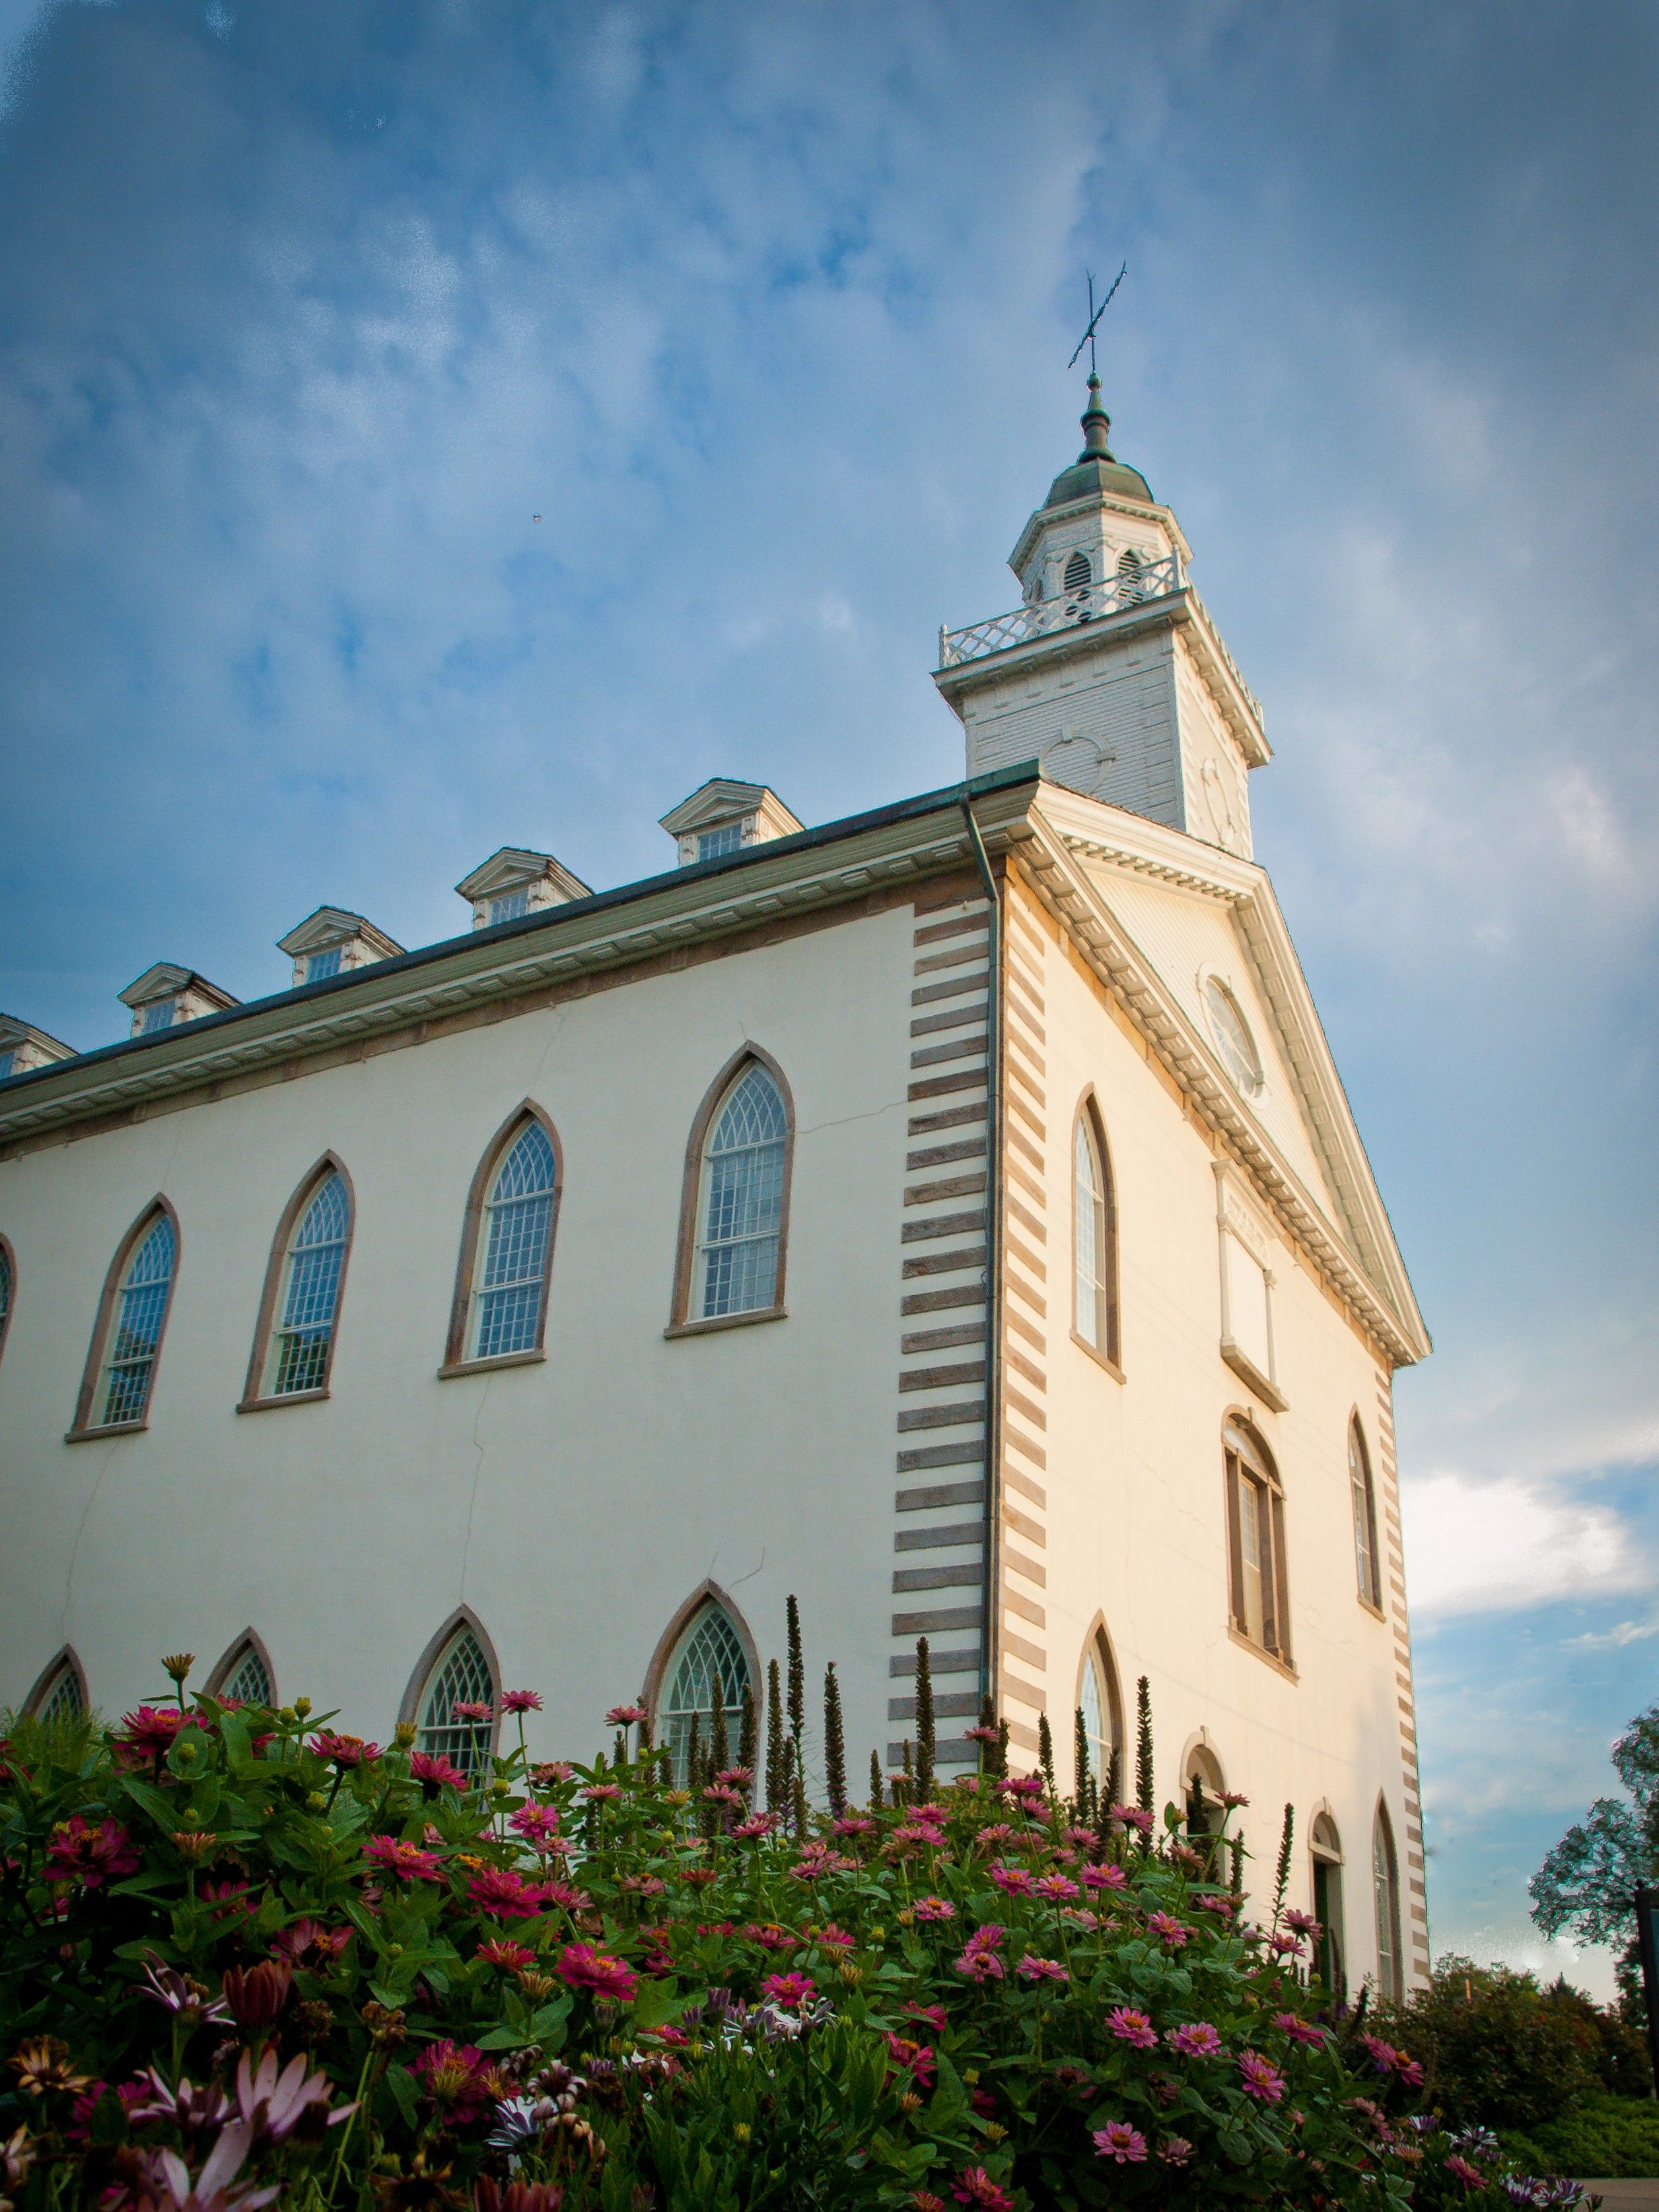 A side view of the Kirtland Temple in sunshine, including scenery.